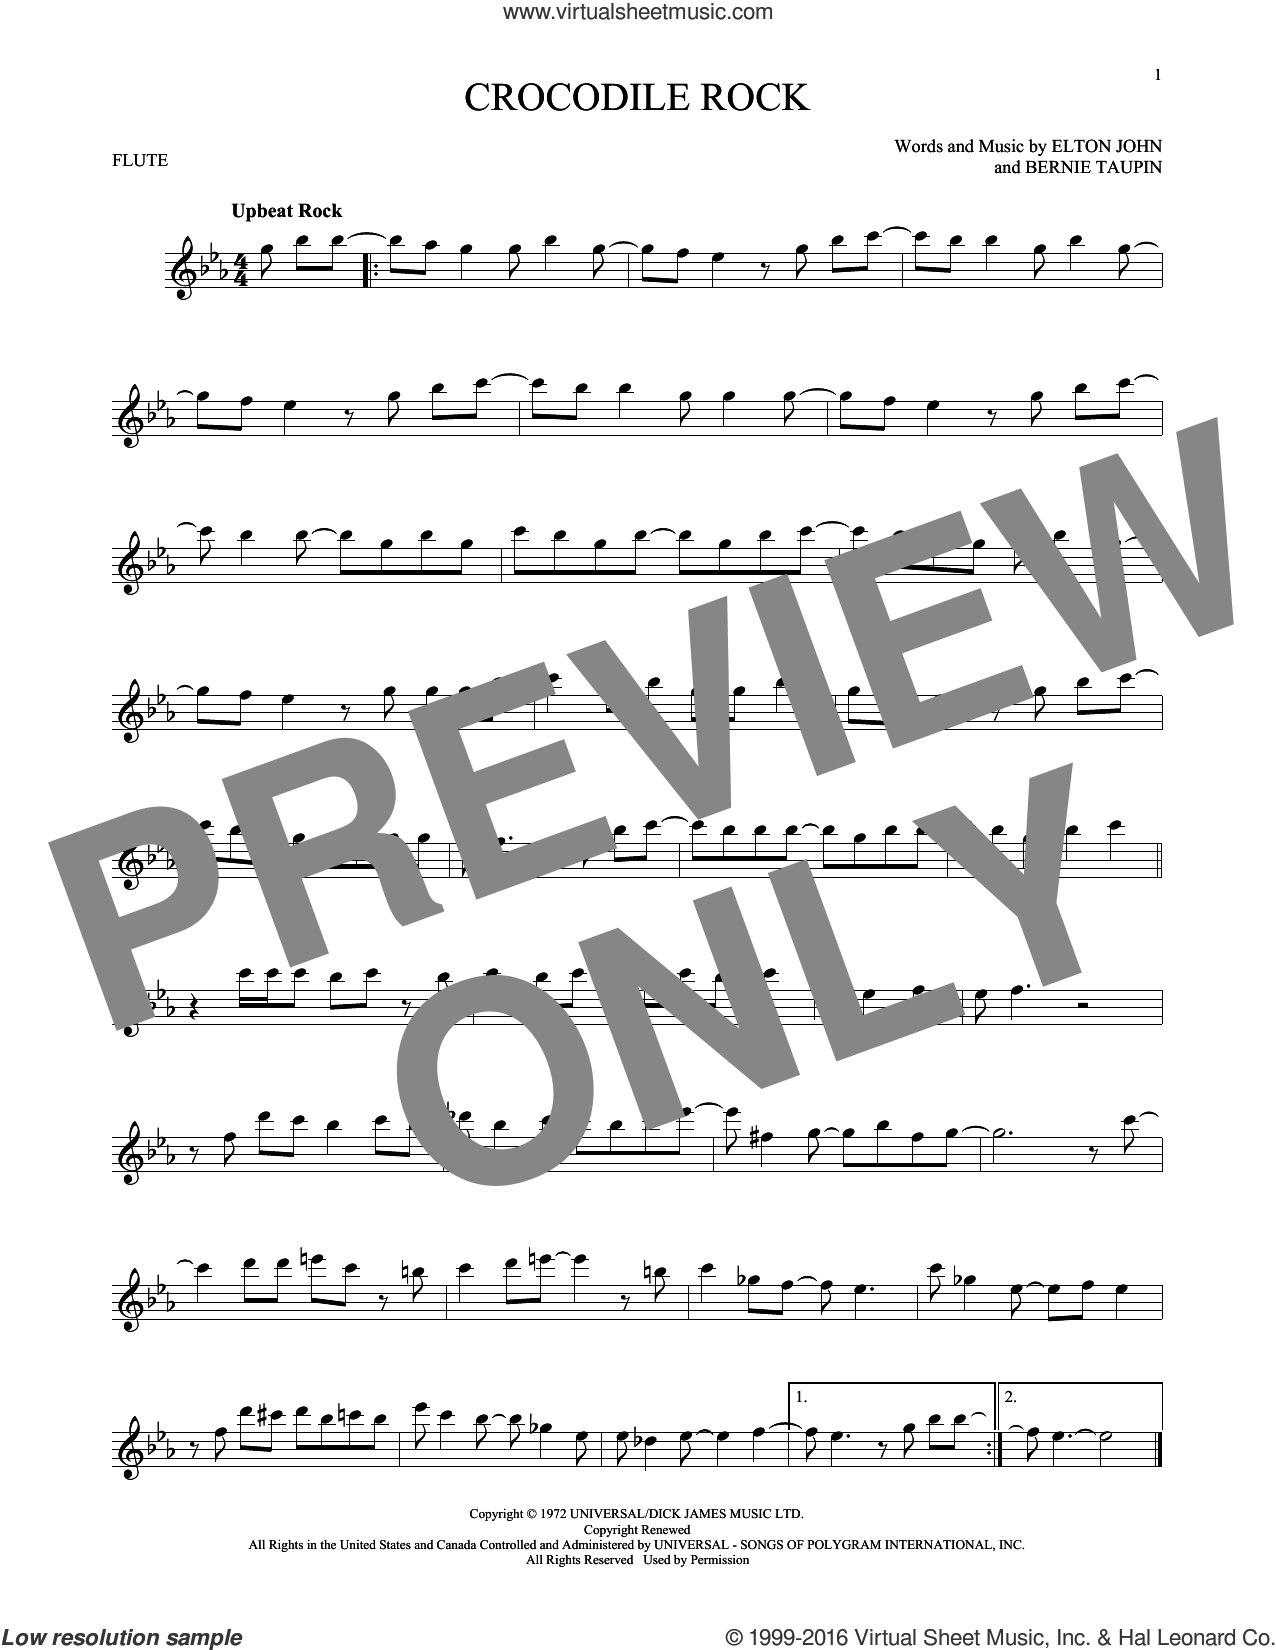 Crocodile Rock sheet music for flute solo by Elton John and Bernie Taupin, intermediate skill level